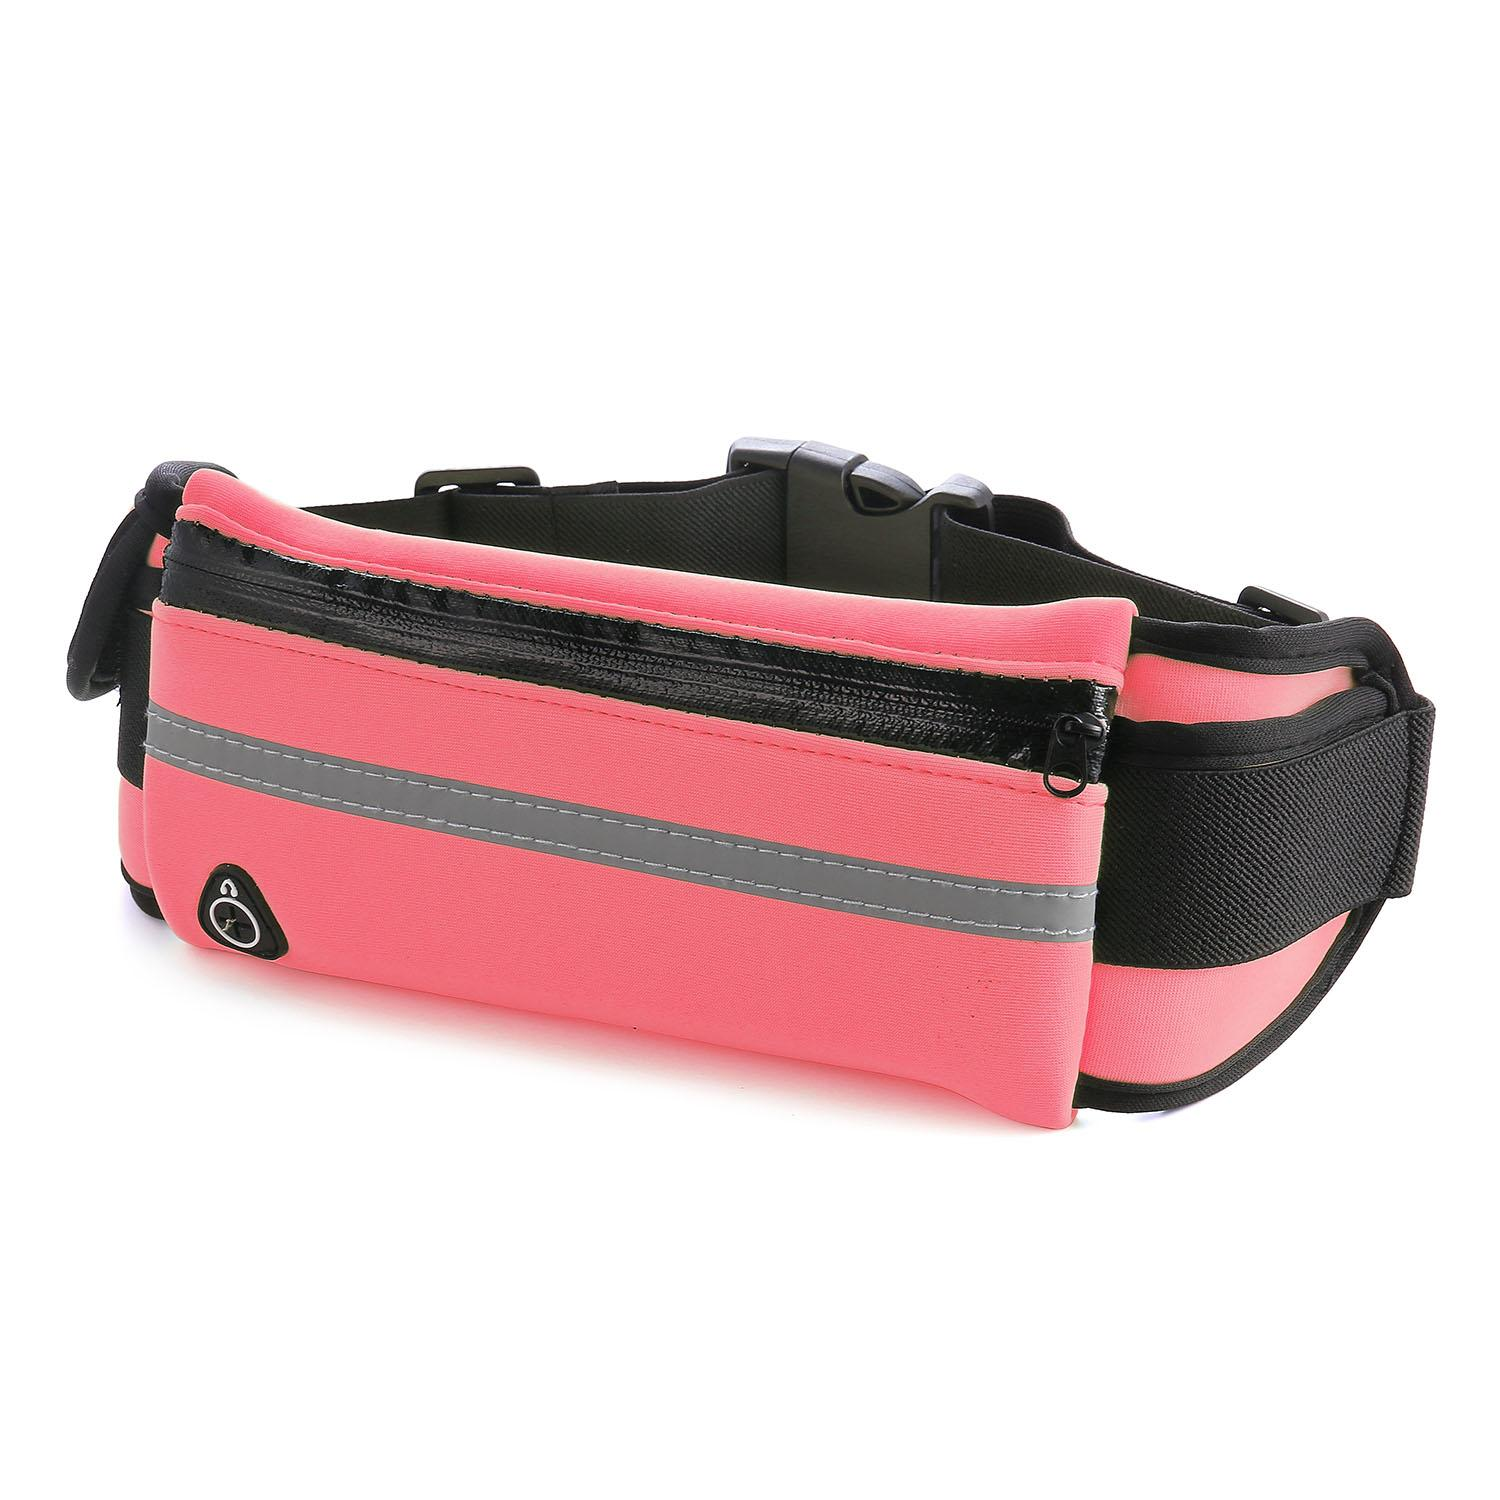 c882f8edefbfc4 Waterproof Running Hiking Sport Bum Bag Travel Money Phone Fanny Pack  Travel Waist Belt Money Zip